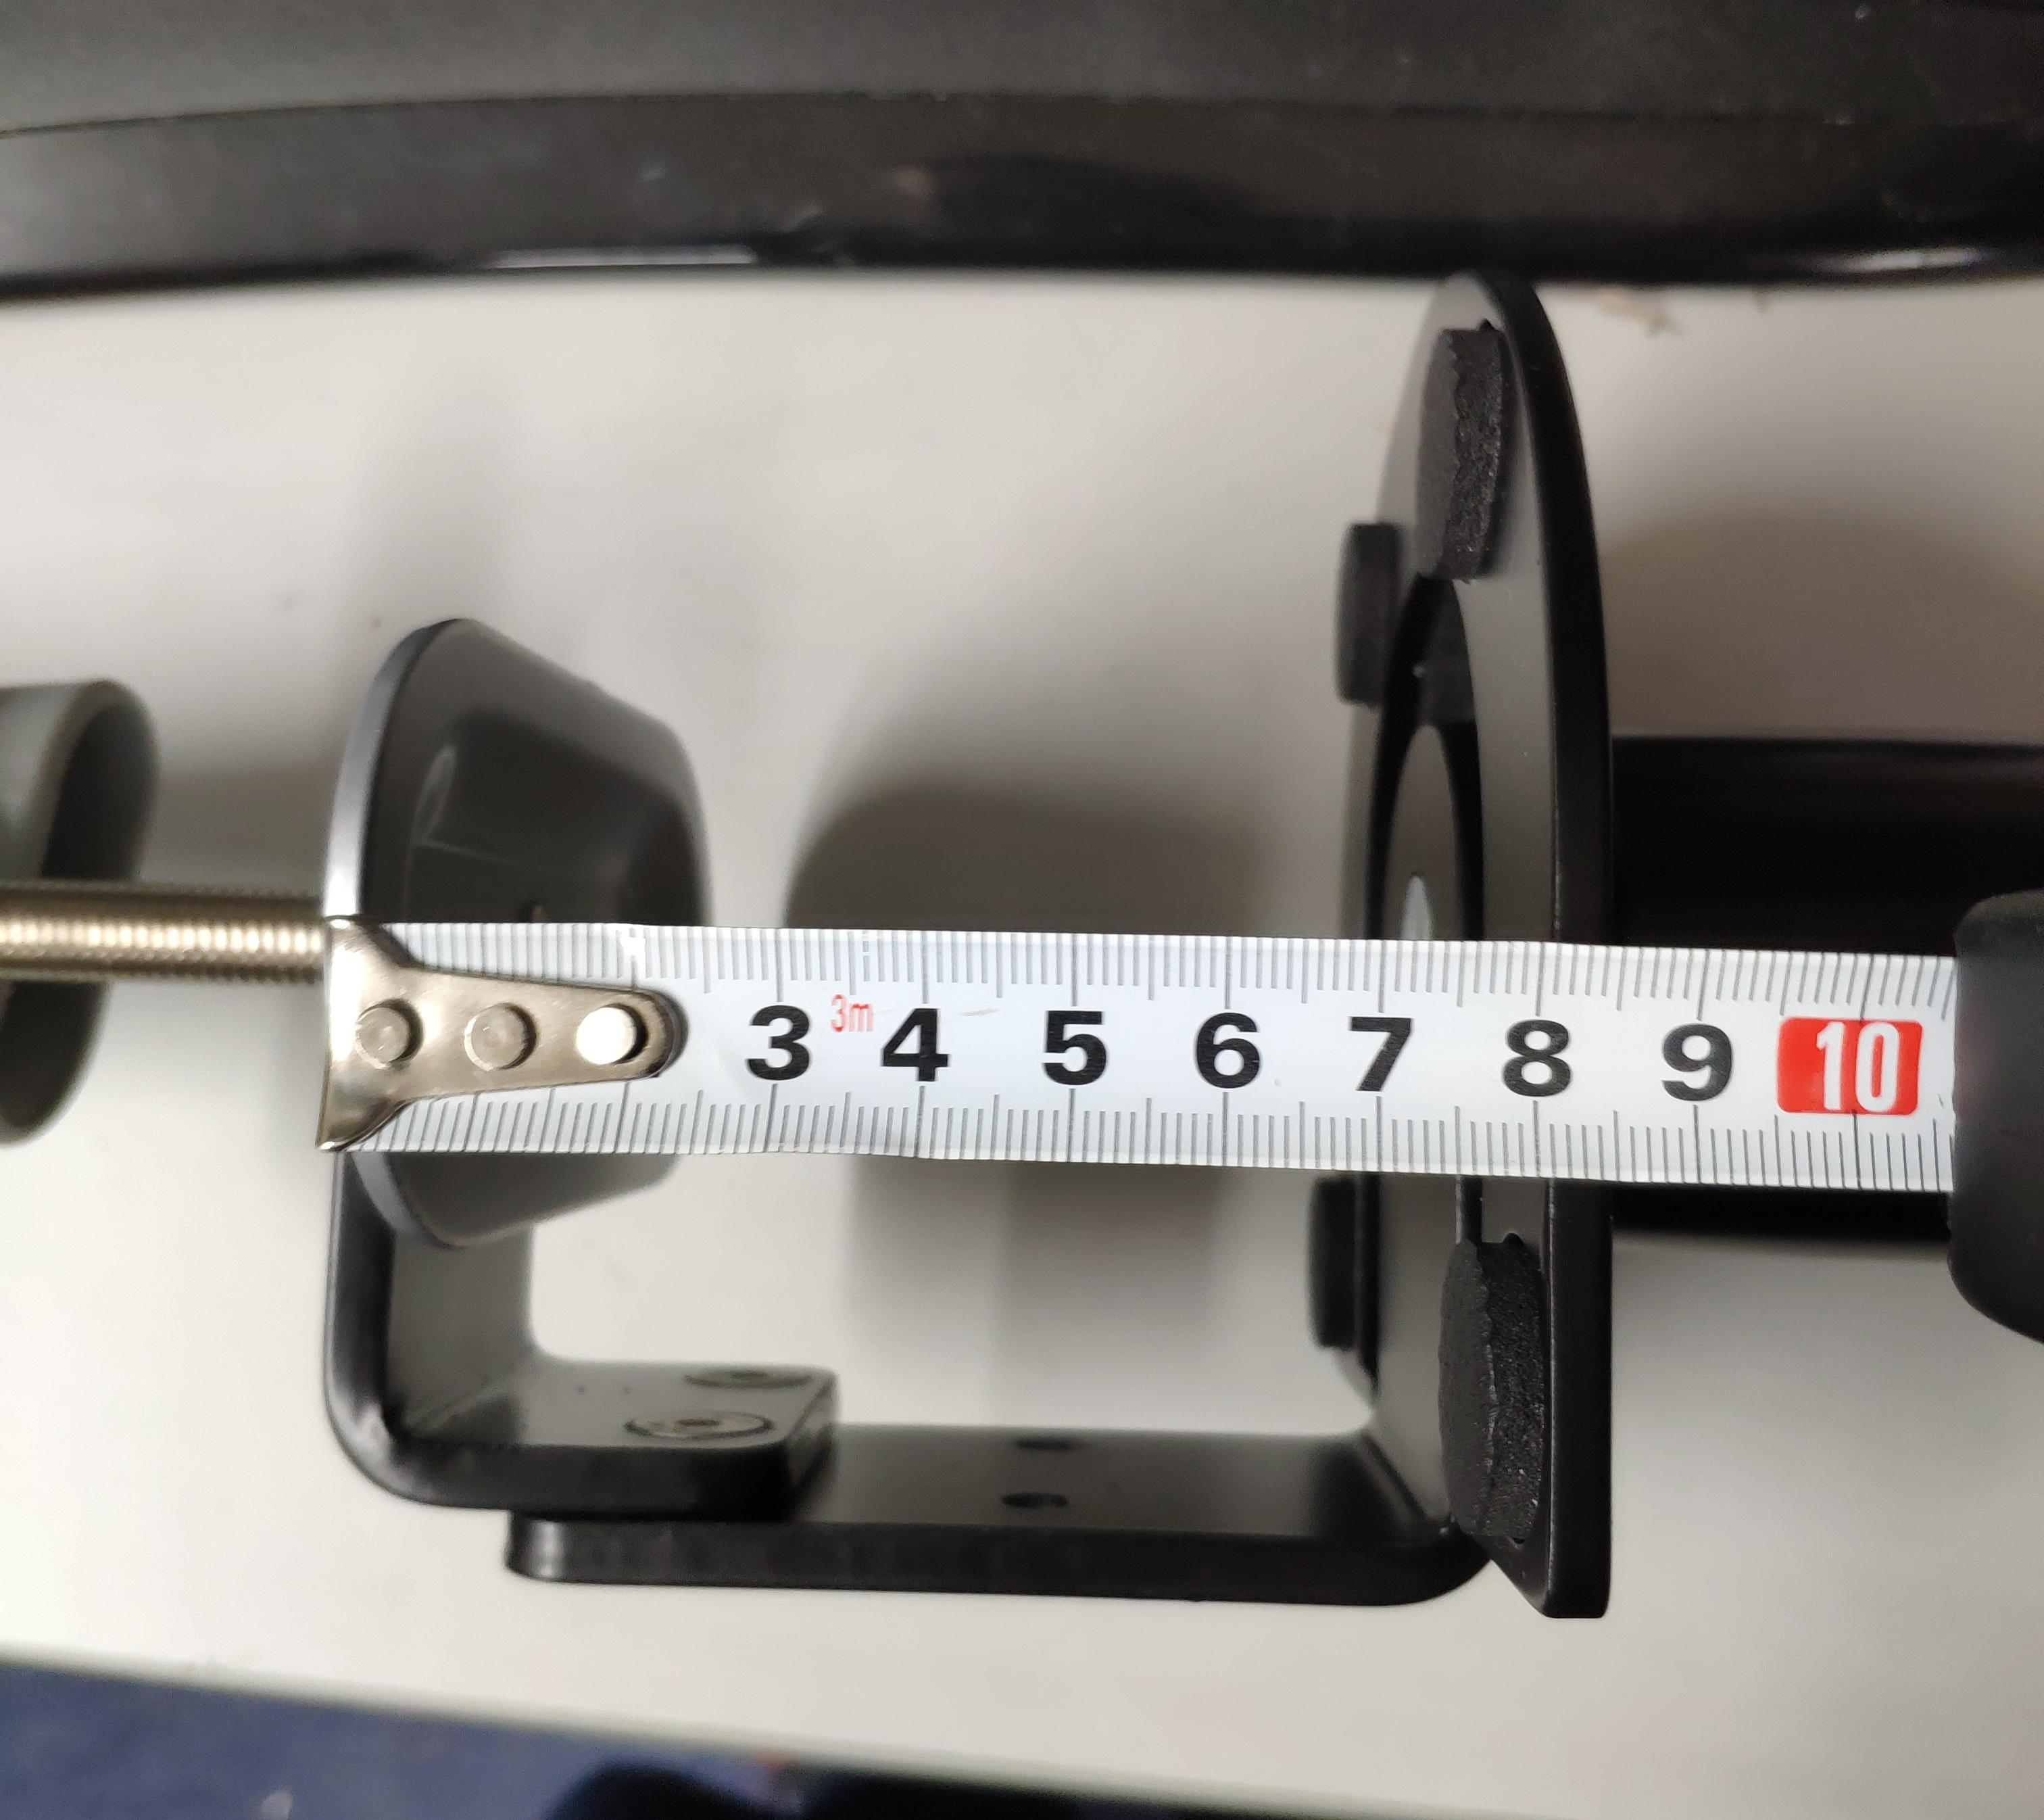 Clamp with the 8cm desk width measurement shown